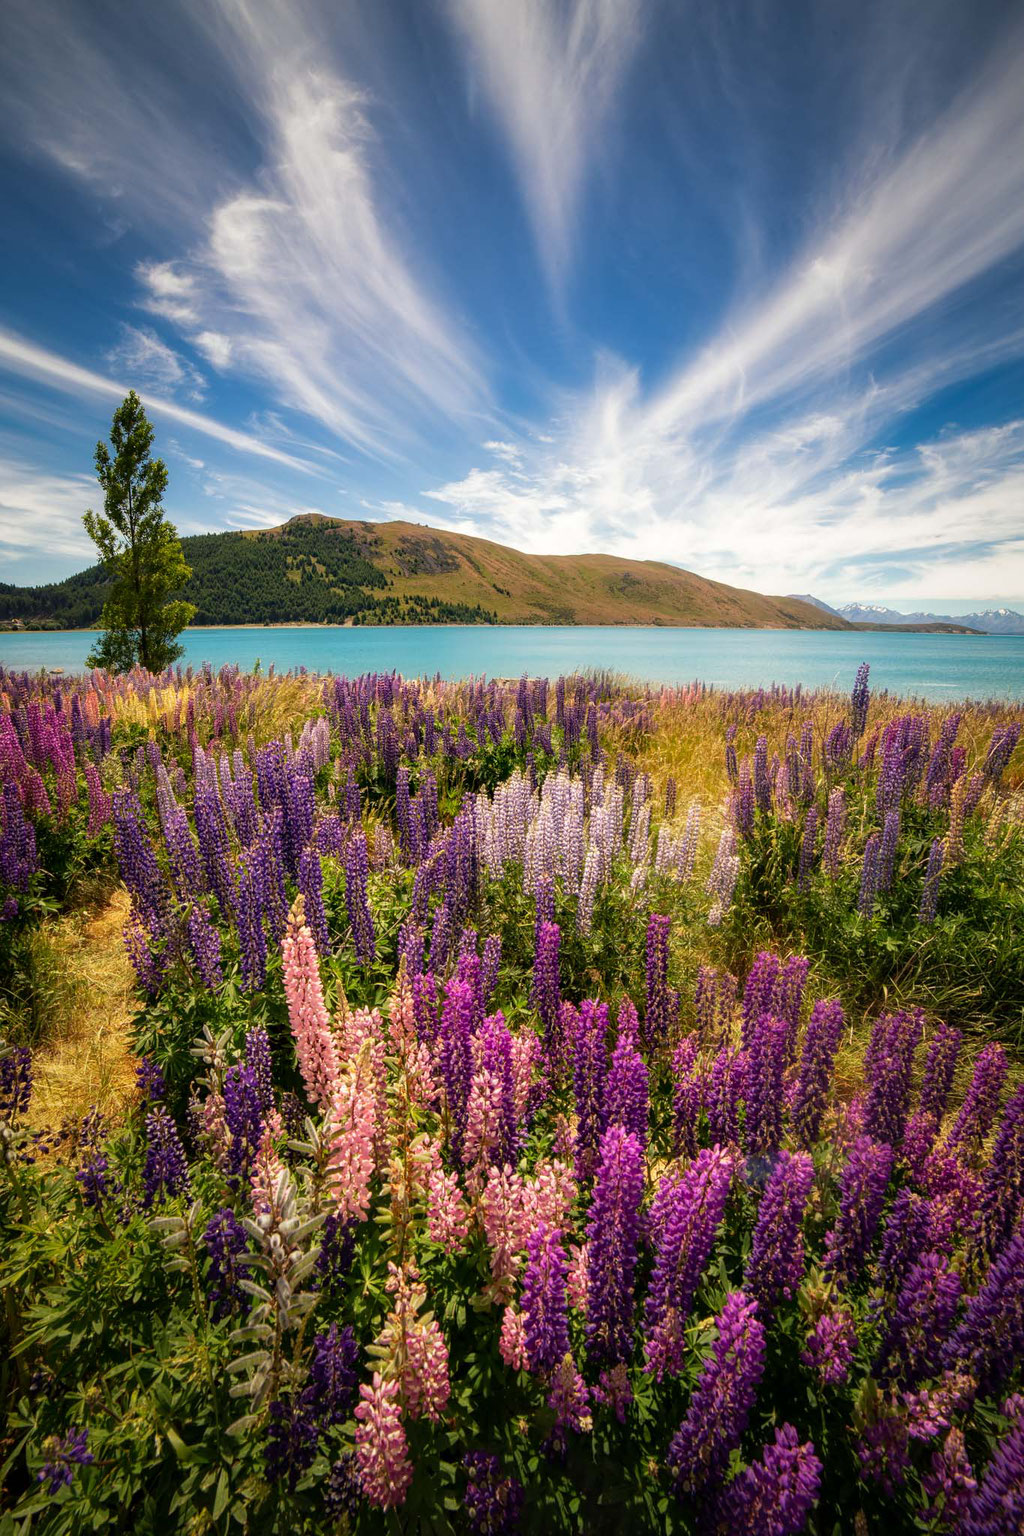 Lupin flowers on the shoreline of Lake Tekapo